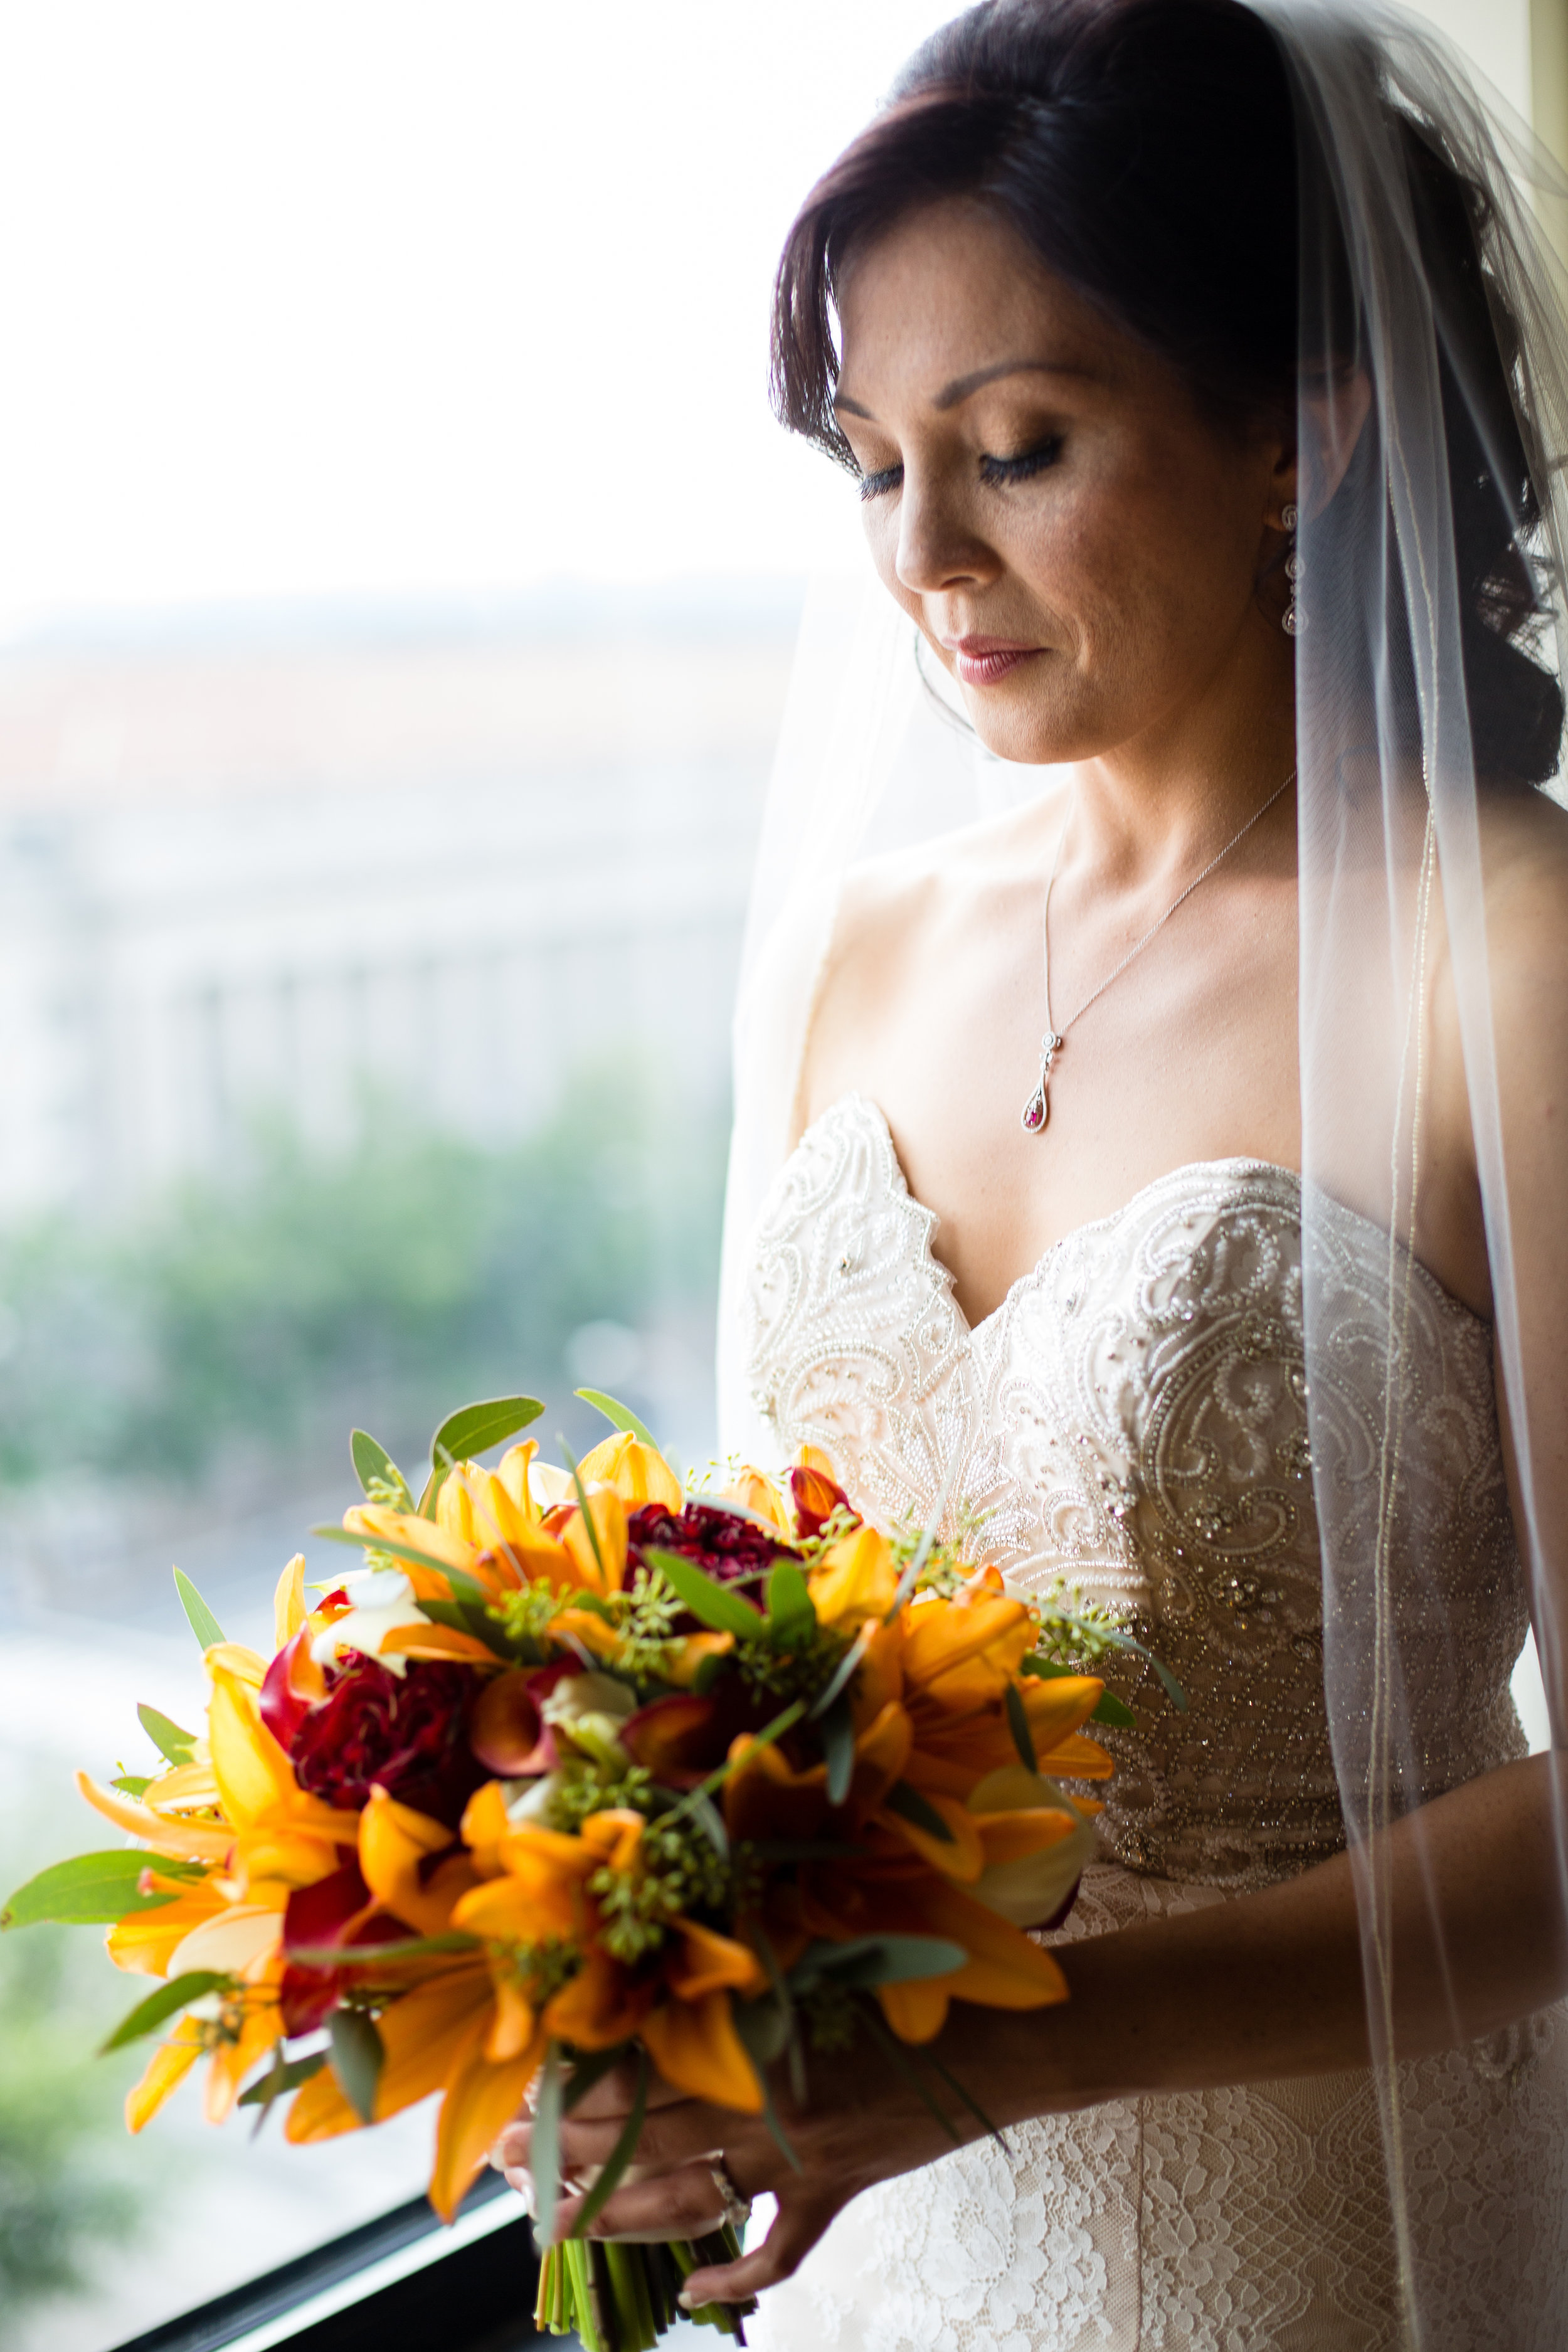 Photography by: http://www.weddingsbypamela.com/